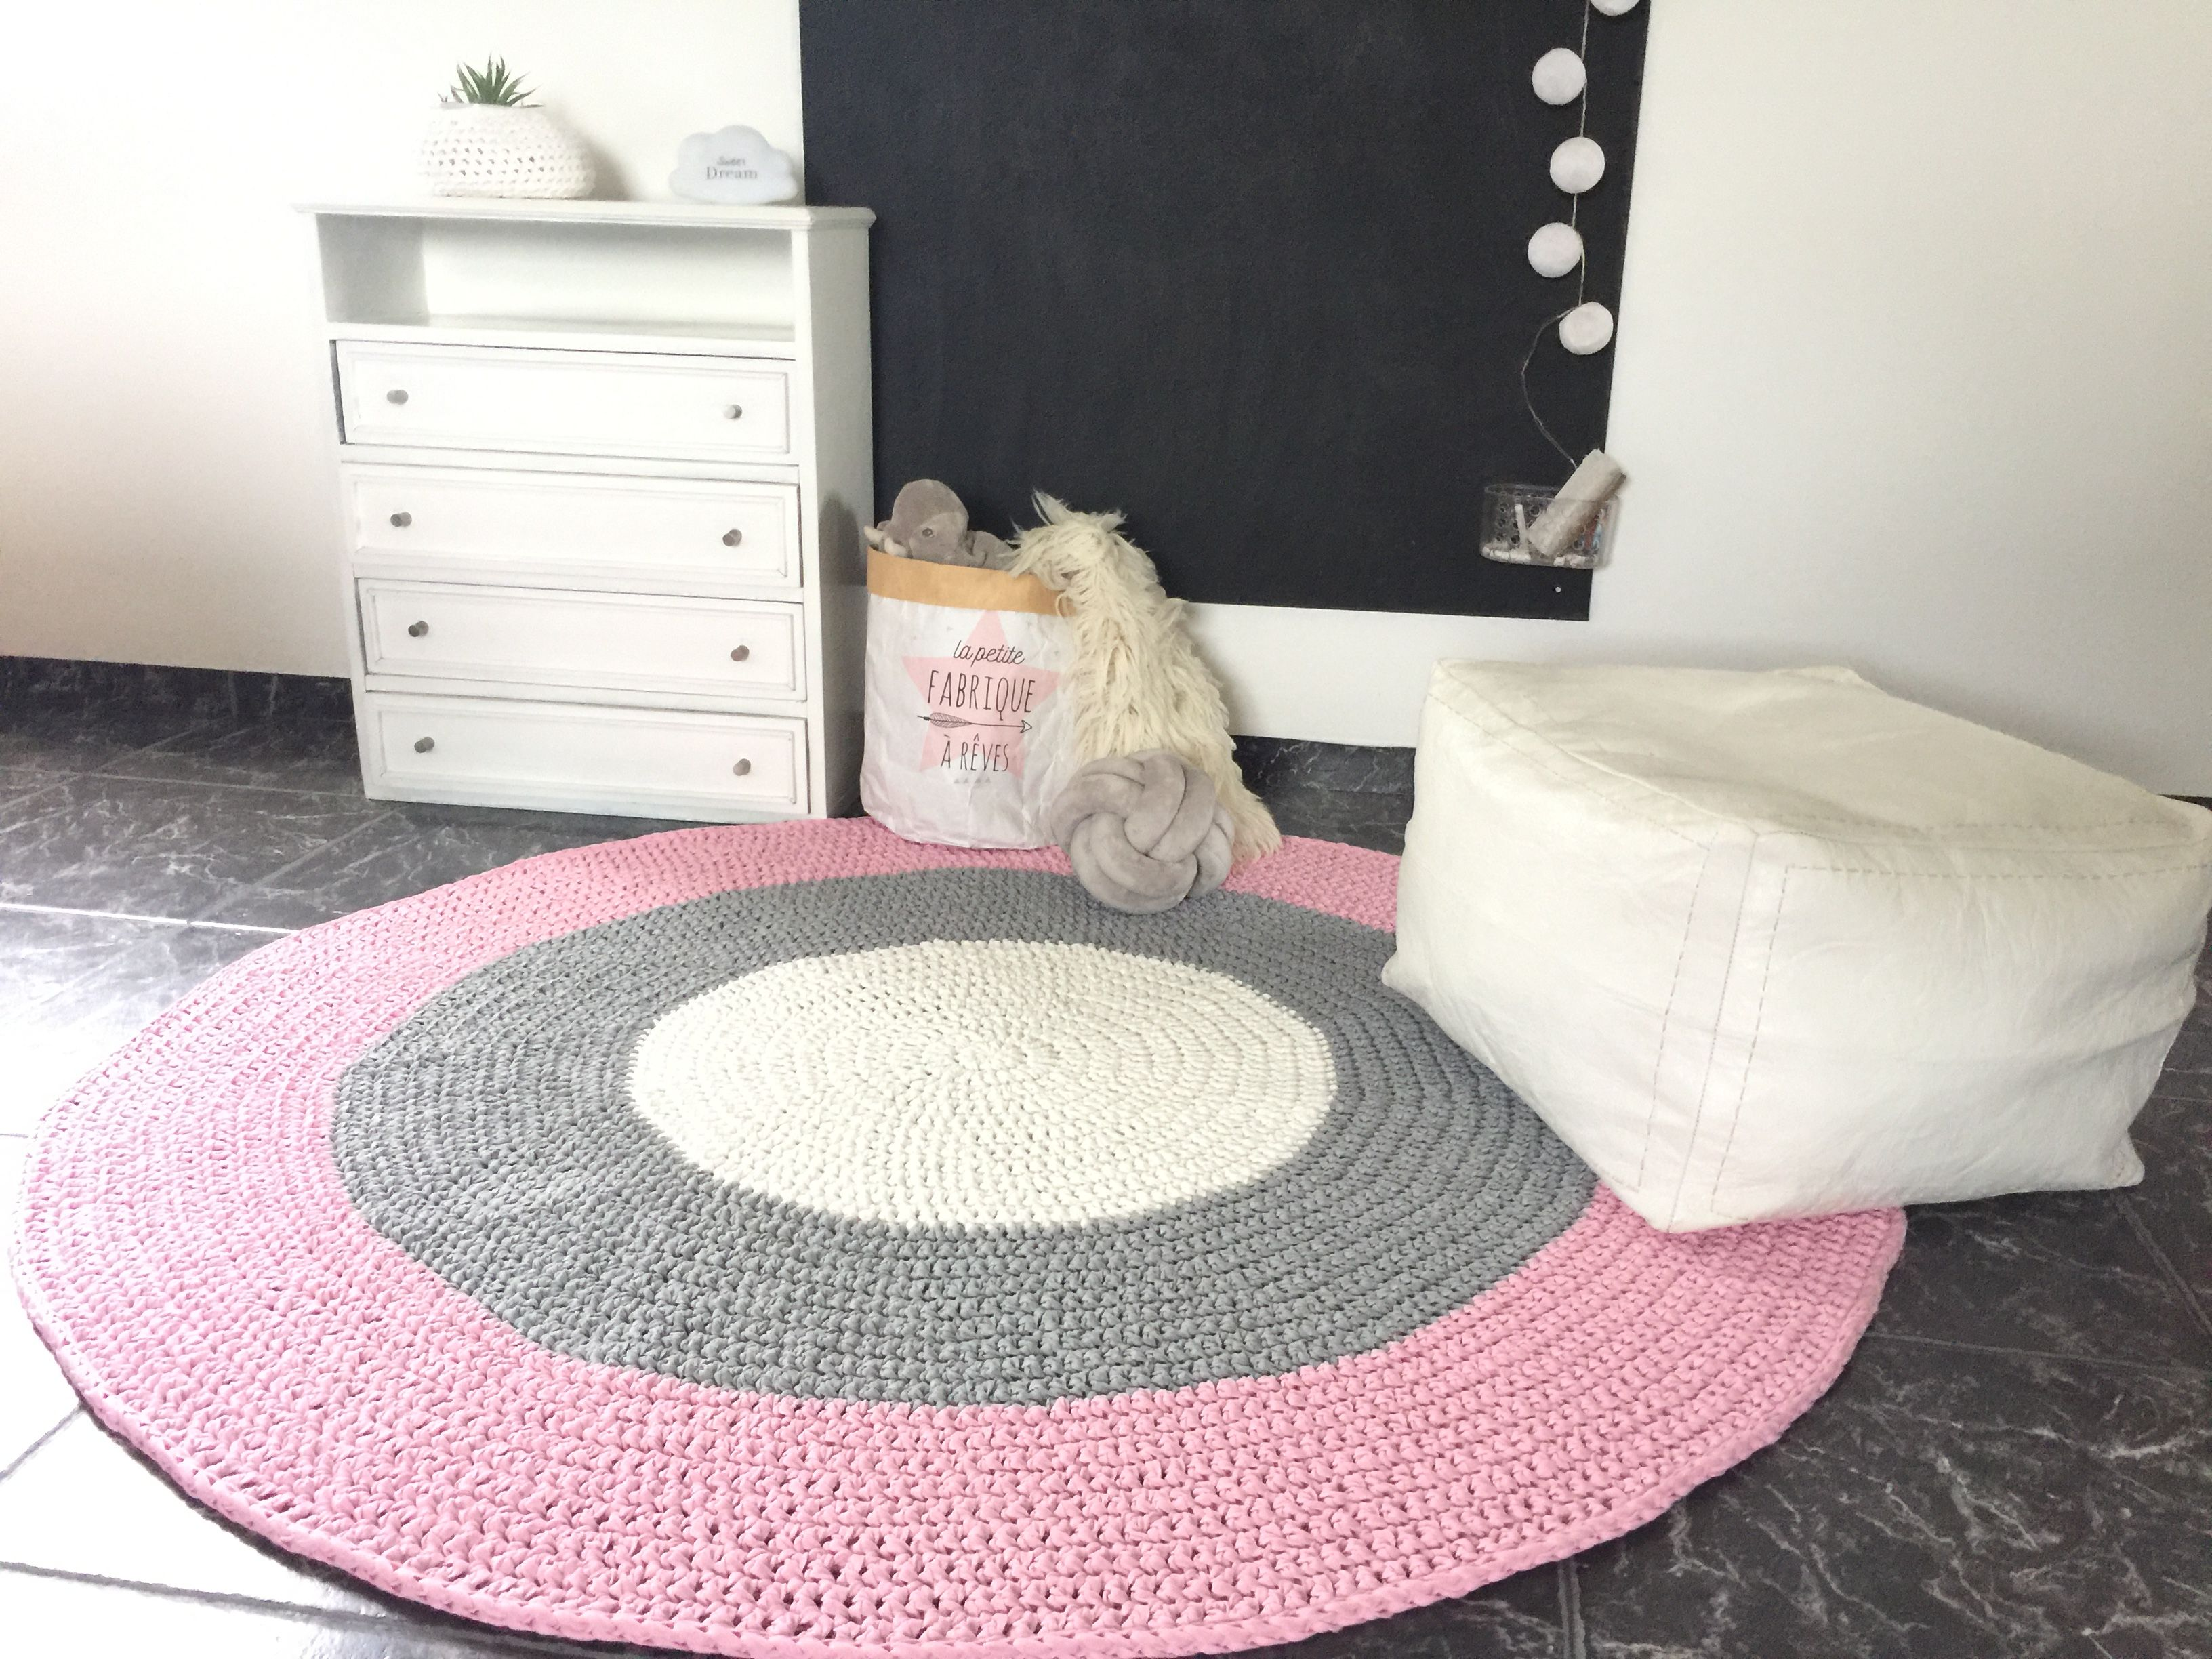 Large Crochet Rug Round Baby Play Mat Tummy Time Mat Etsy In 2020 Kids Rugs Rugs Round Rugs